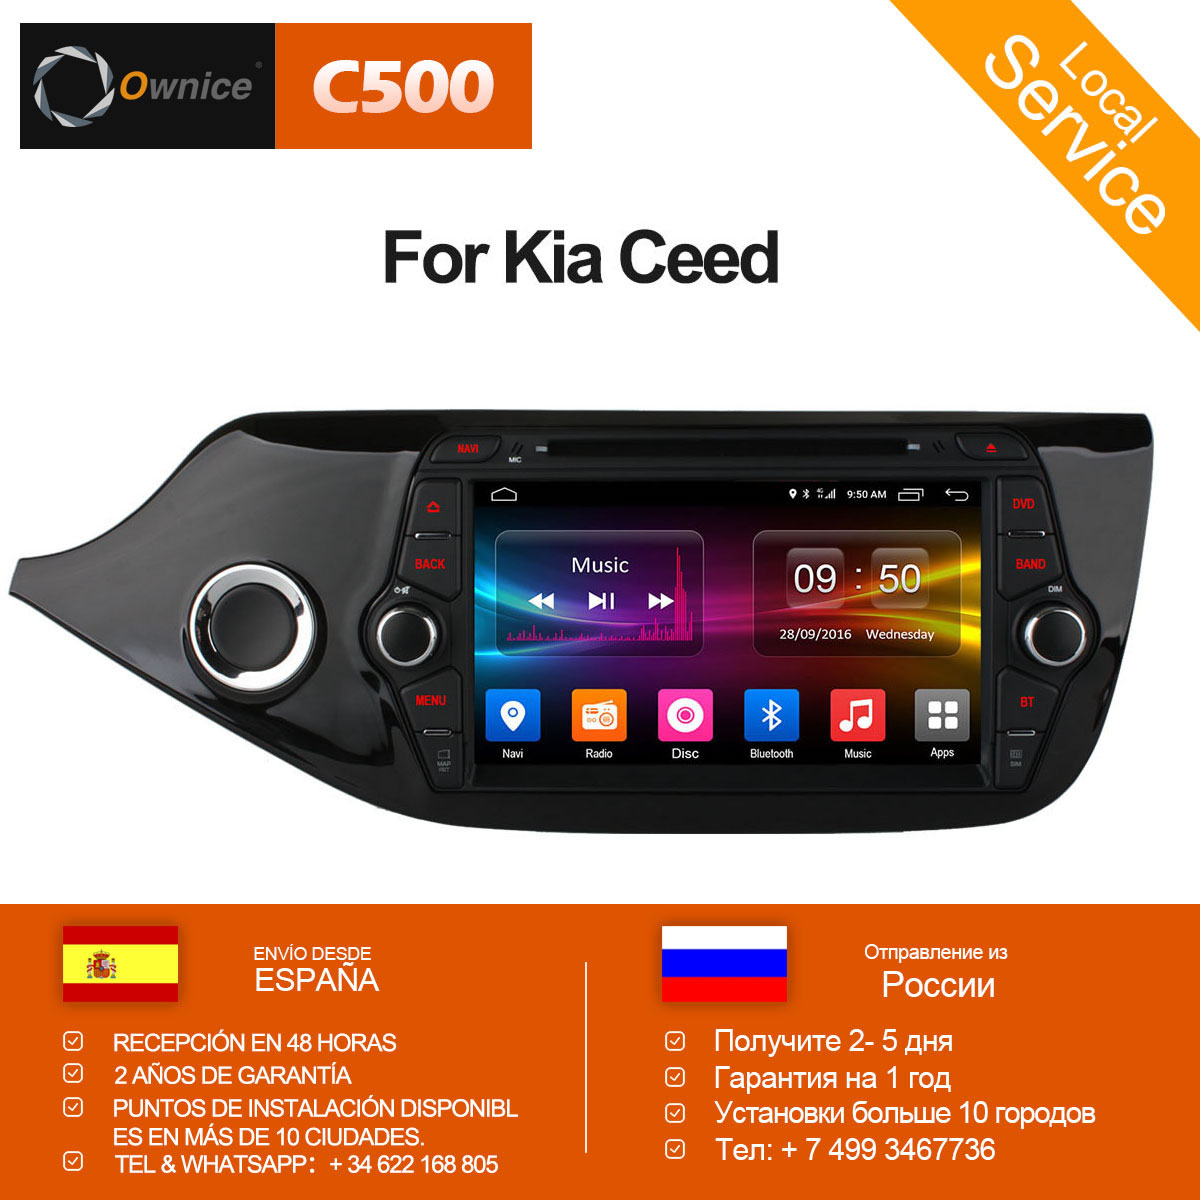 Ownice C500 4G SIM LTE Octa 8 Core Android 6.0 For Kia CEED 2013-2015 Car DVD Player GPS Navi Radio WIFI 4G BT 2GB RAM 32G ROM 4g sim lte quad core android 6 0 for mazda 3 mazda3 2004 2009 car dvd player non dvd gps navi radio wifi 4g bt 2gb ram 16g rom